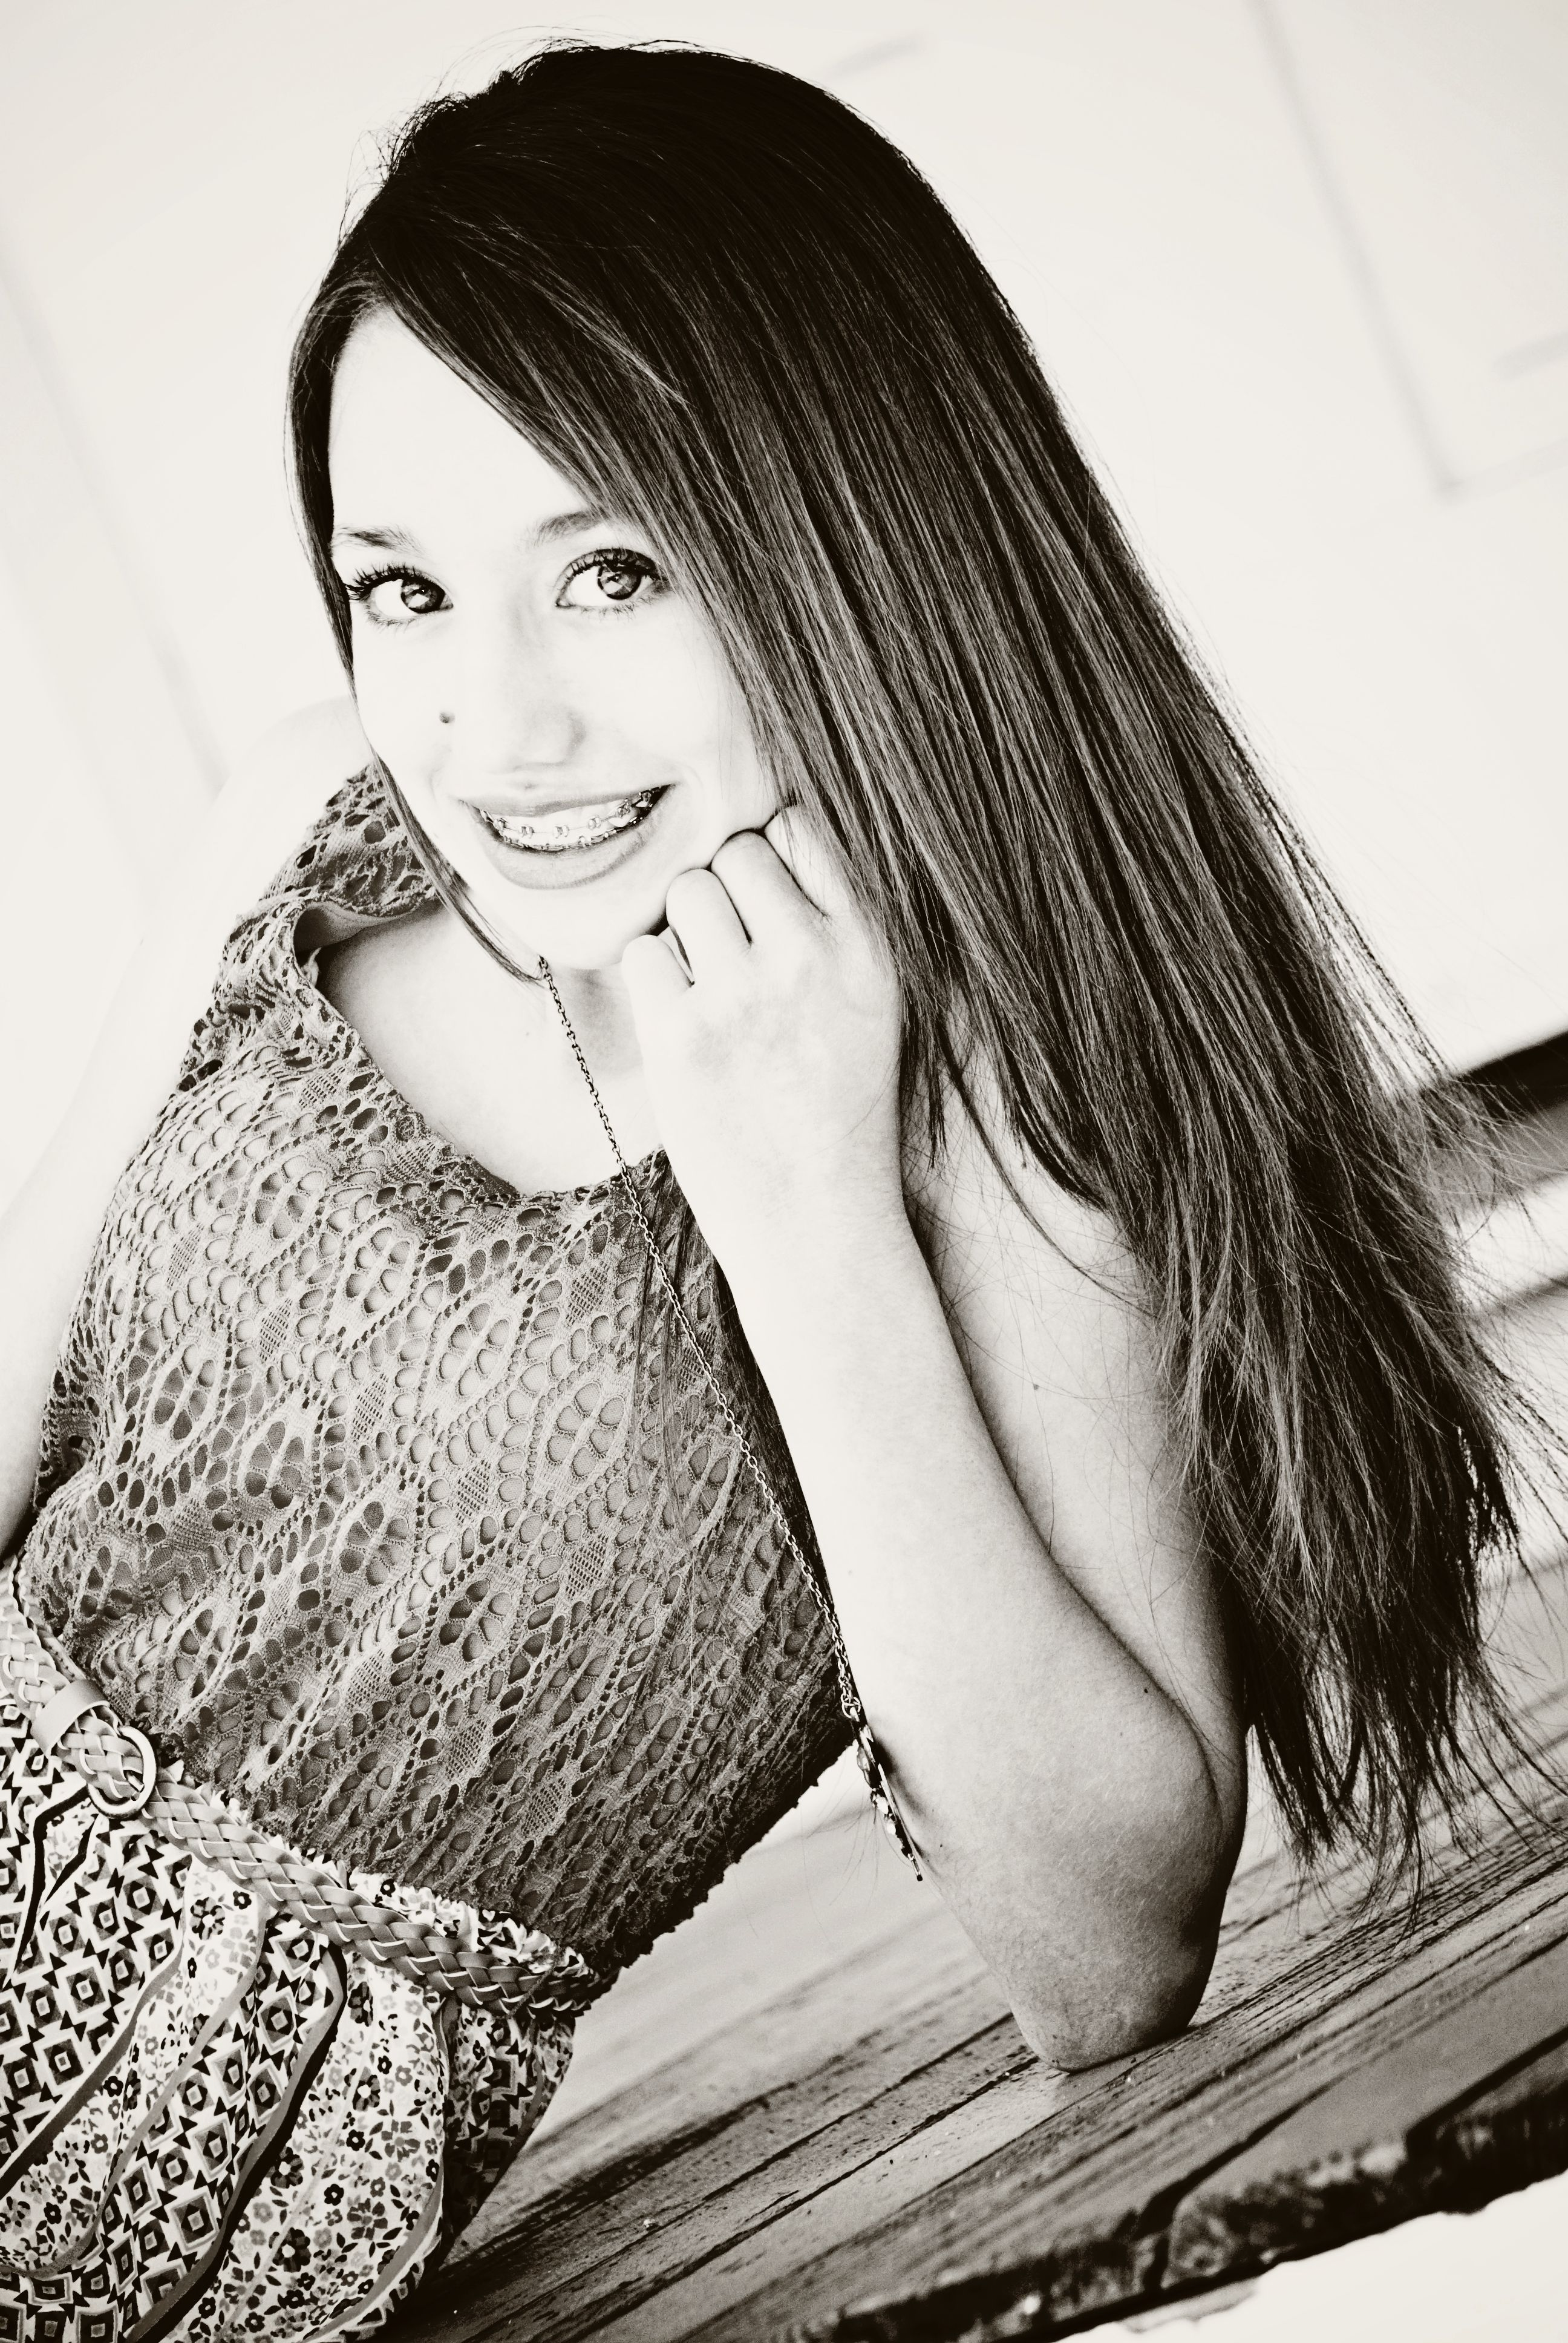 14 year old portraits rich blk/wht